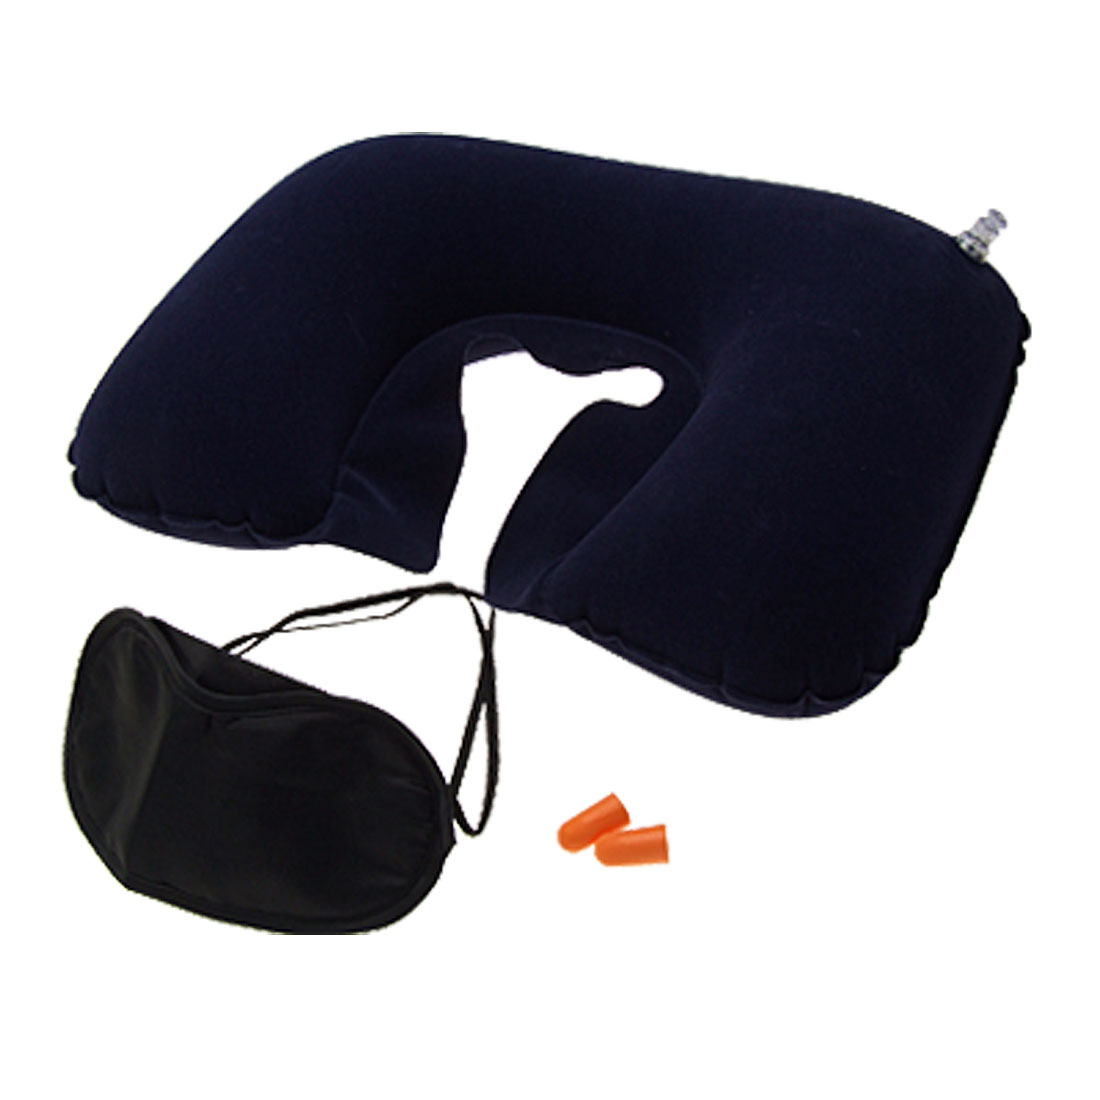 Inflatable U Shape Pillow Rest Support Blinder Earplug for Travel Camping